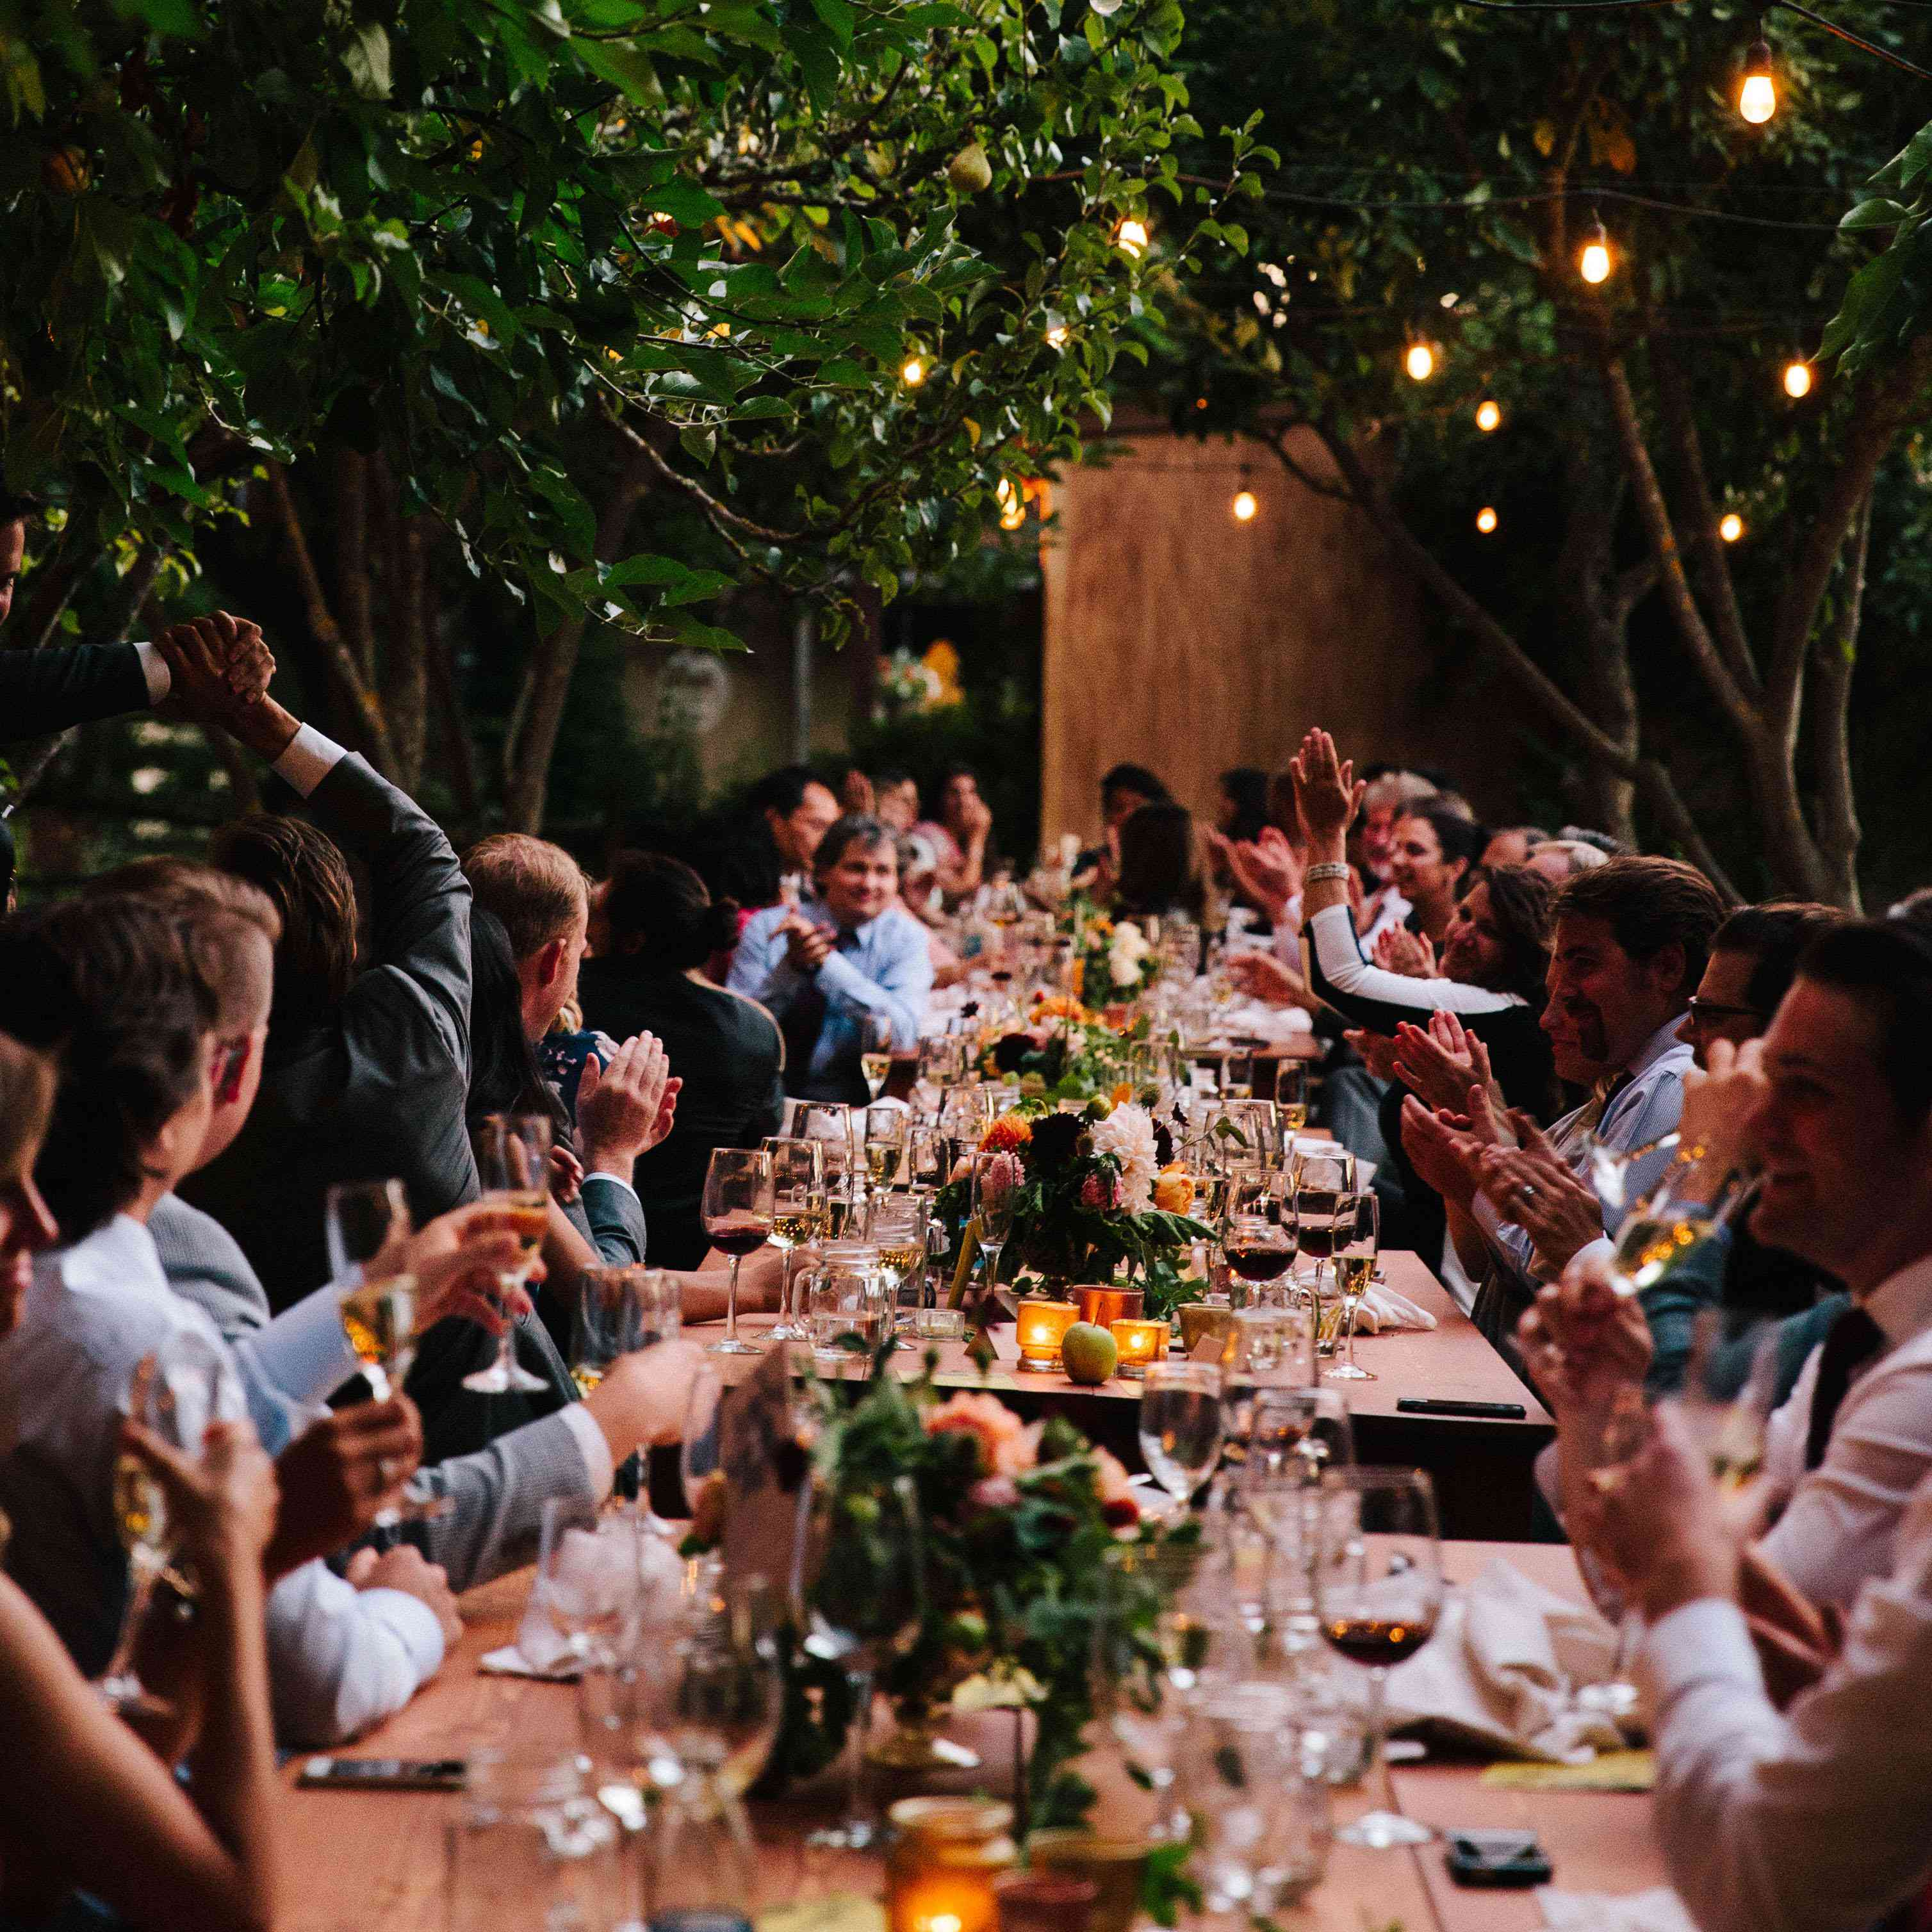 Wedding Food Tables: Who Sits At The Head Table During The Wedding Reception?